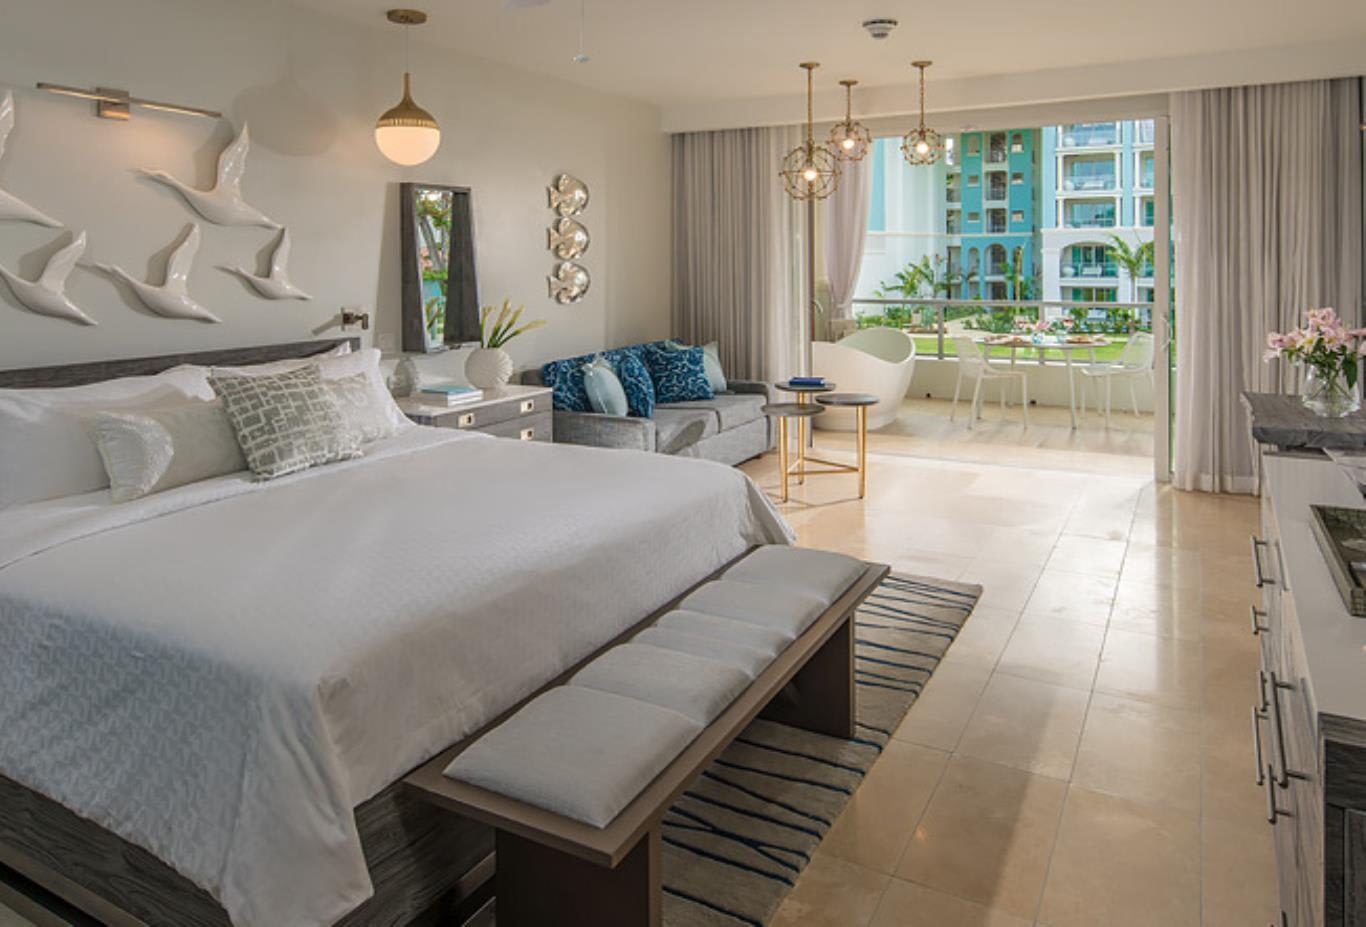 OSLB Royal Seaside Oceanview Crystal Lagoon Club Level Barbados Suite with Balcony Tranquillity Soaking Tub bedroom